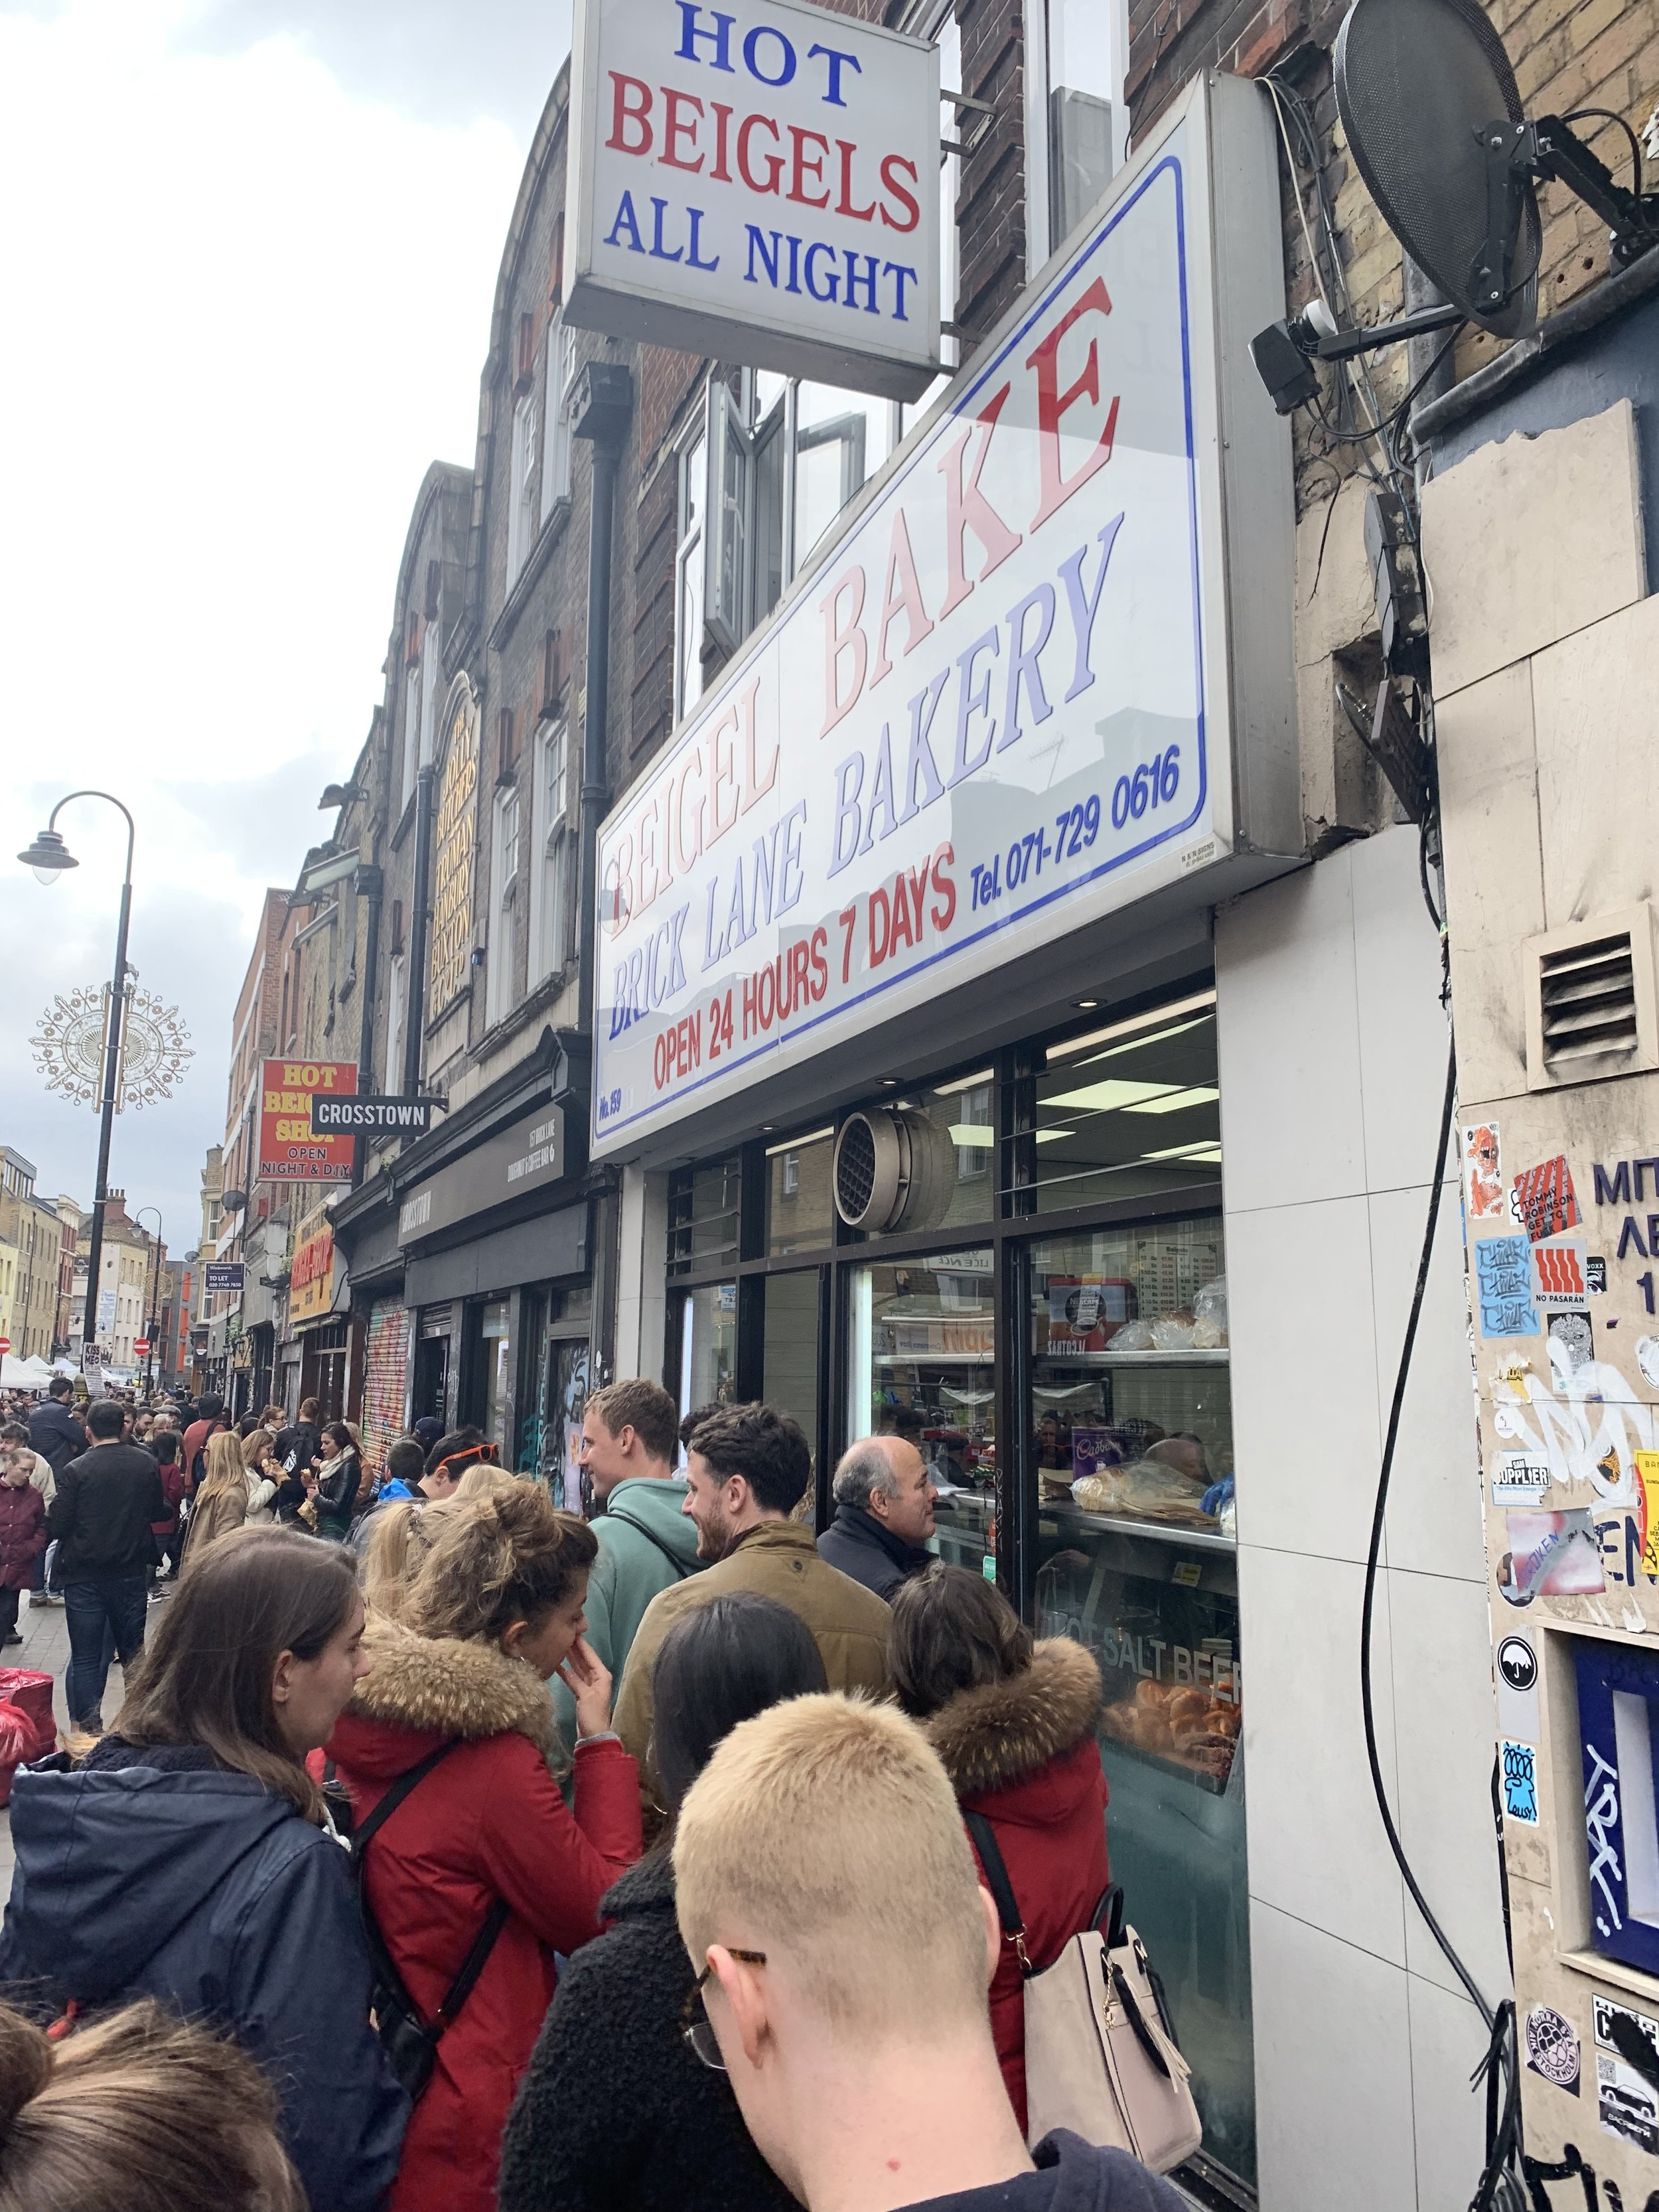 The queue for Bagel Bake - and it's a 24 hour joint too!